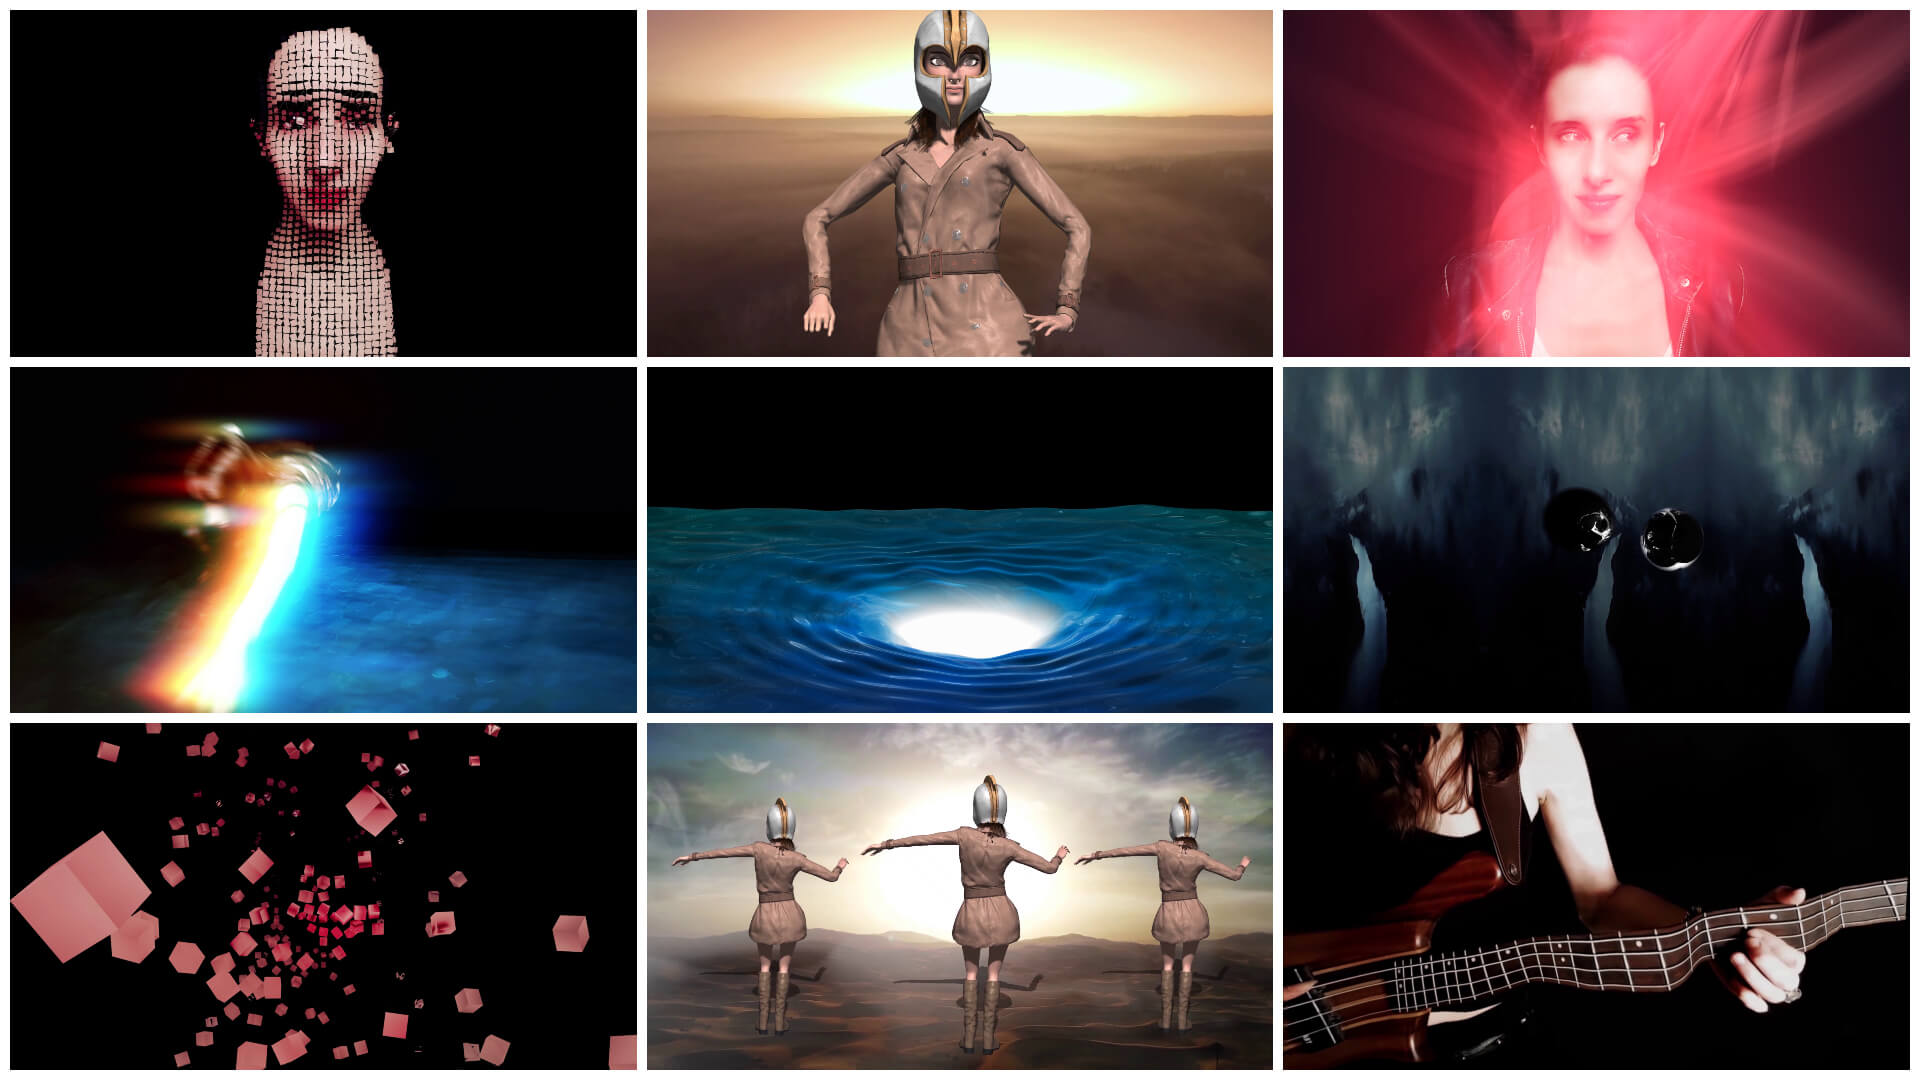 """The Tech Behind the """"Red Lion"""" Music Video [Mettle Mantra VR, Flux, FreeForm Pro, Adobe Fuse & Mixamo] Olivia Hadjiioannou Oh. Prog Metal"""